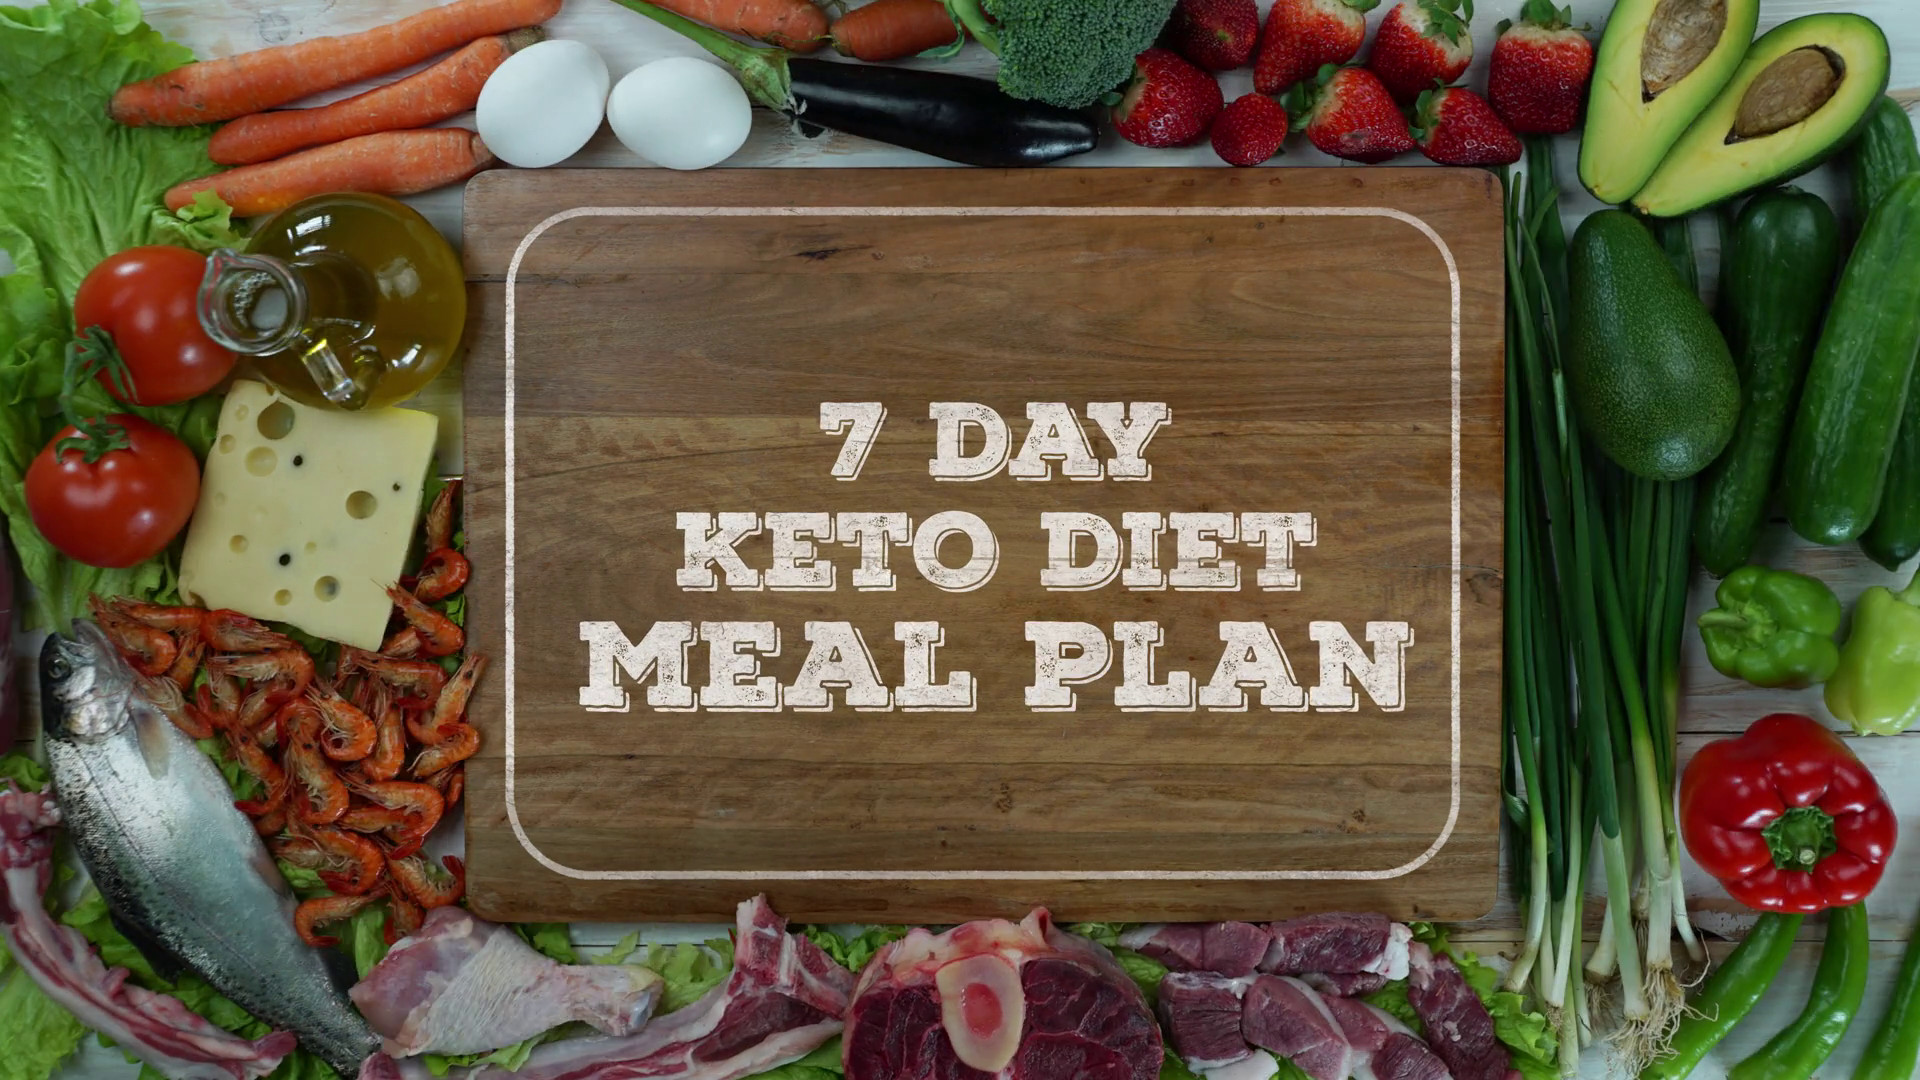 Keto Diet Breastfeeding  7 Day Keto Diet Breastfeeding Meal Plan Payhip